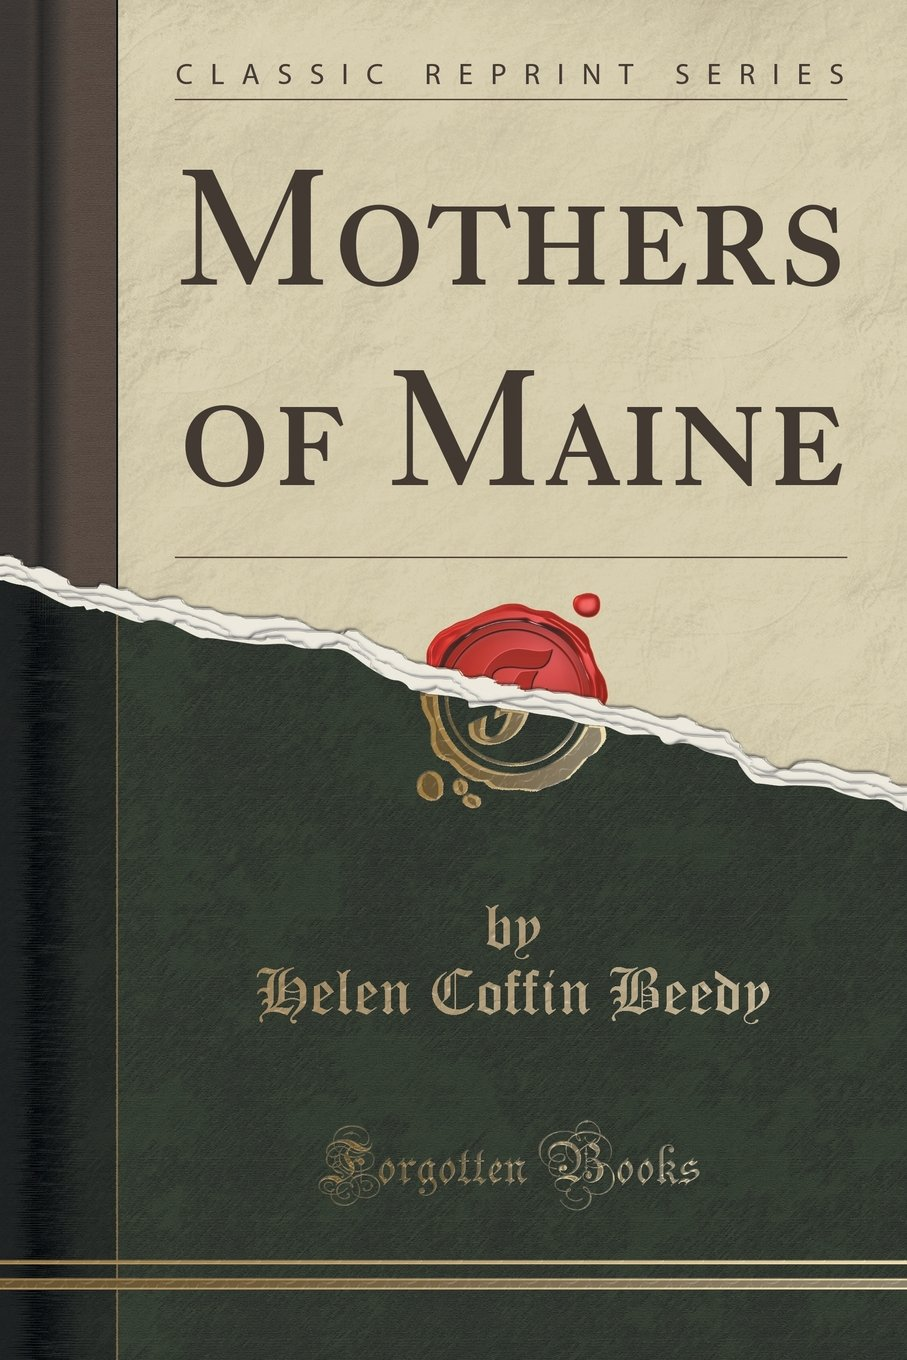 mothers-of-maine-classic-reprint